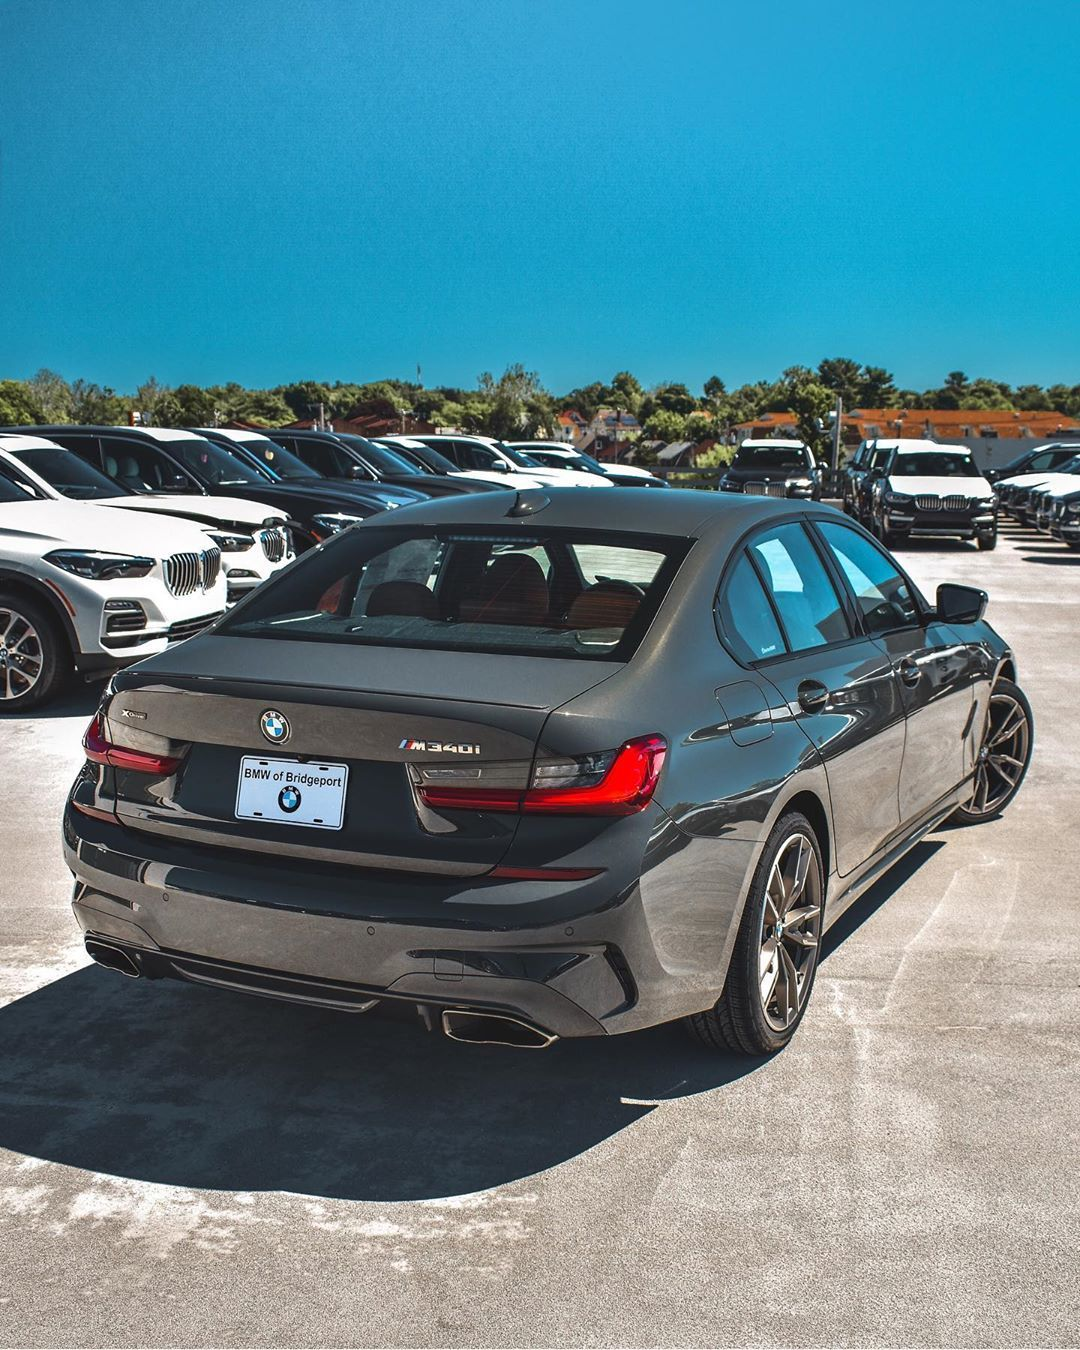 Our Tantalizing 2020 Bmw M340i In Dravit Grey This Time From The Backside Can The Rear Of This Model Compete With Its F Bmw Front End Design Trucks And Girls